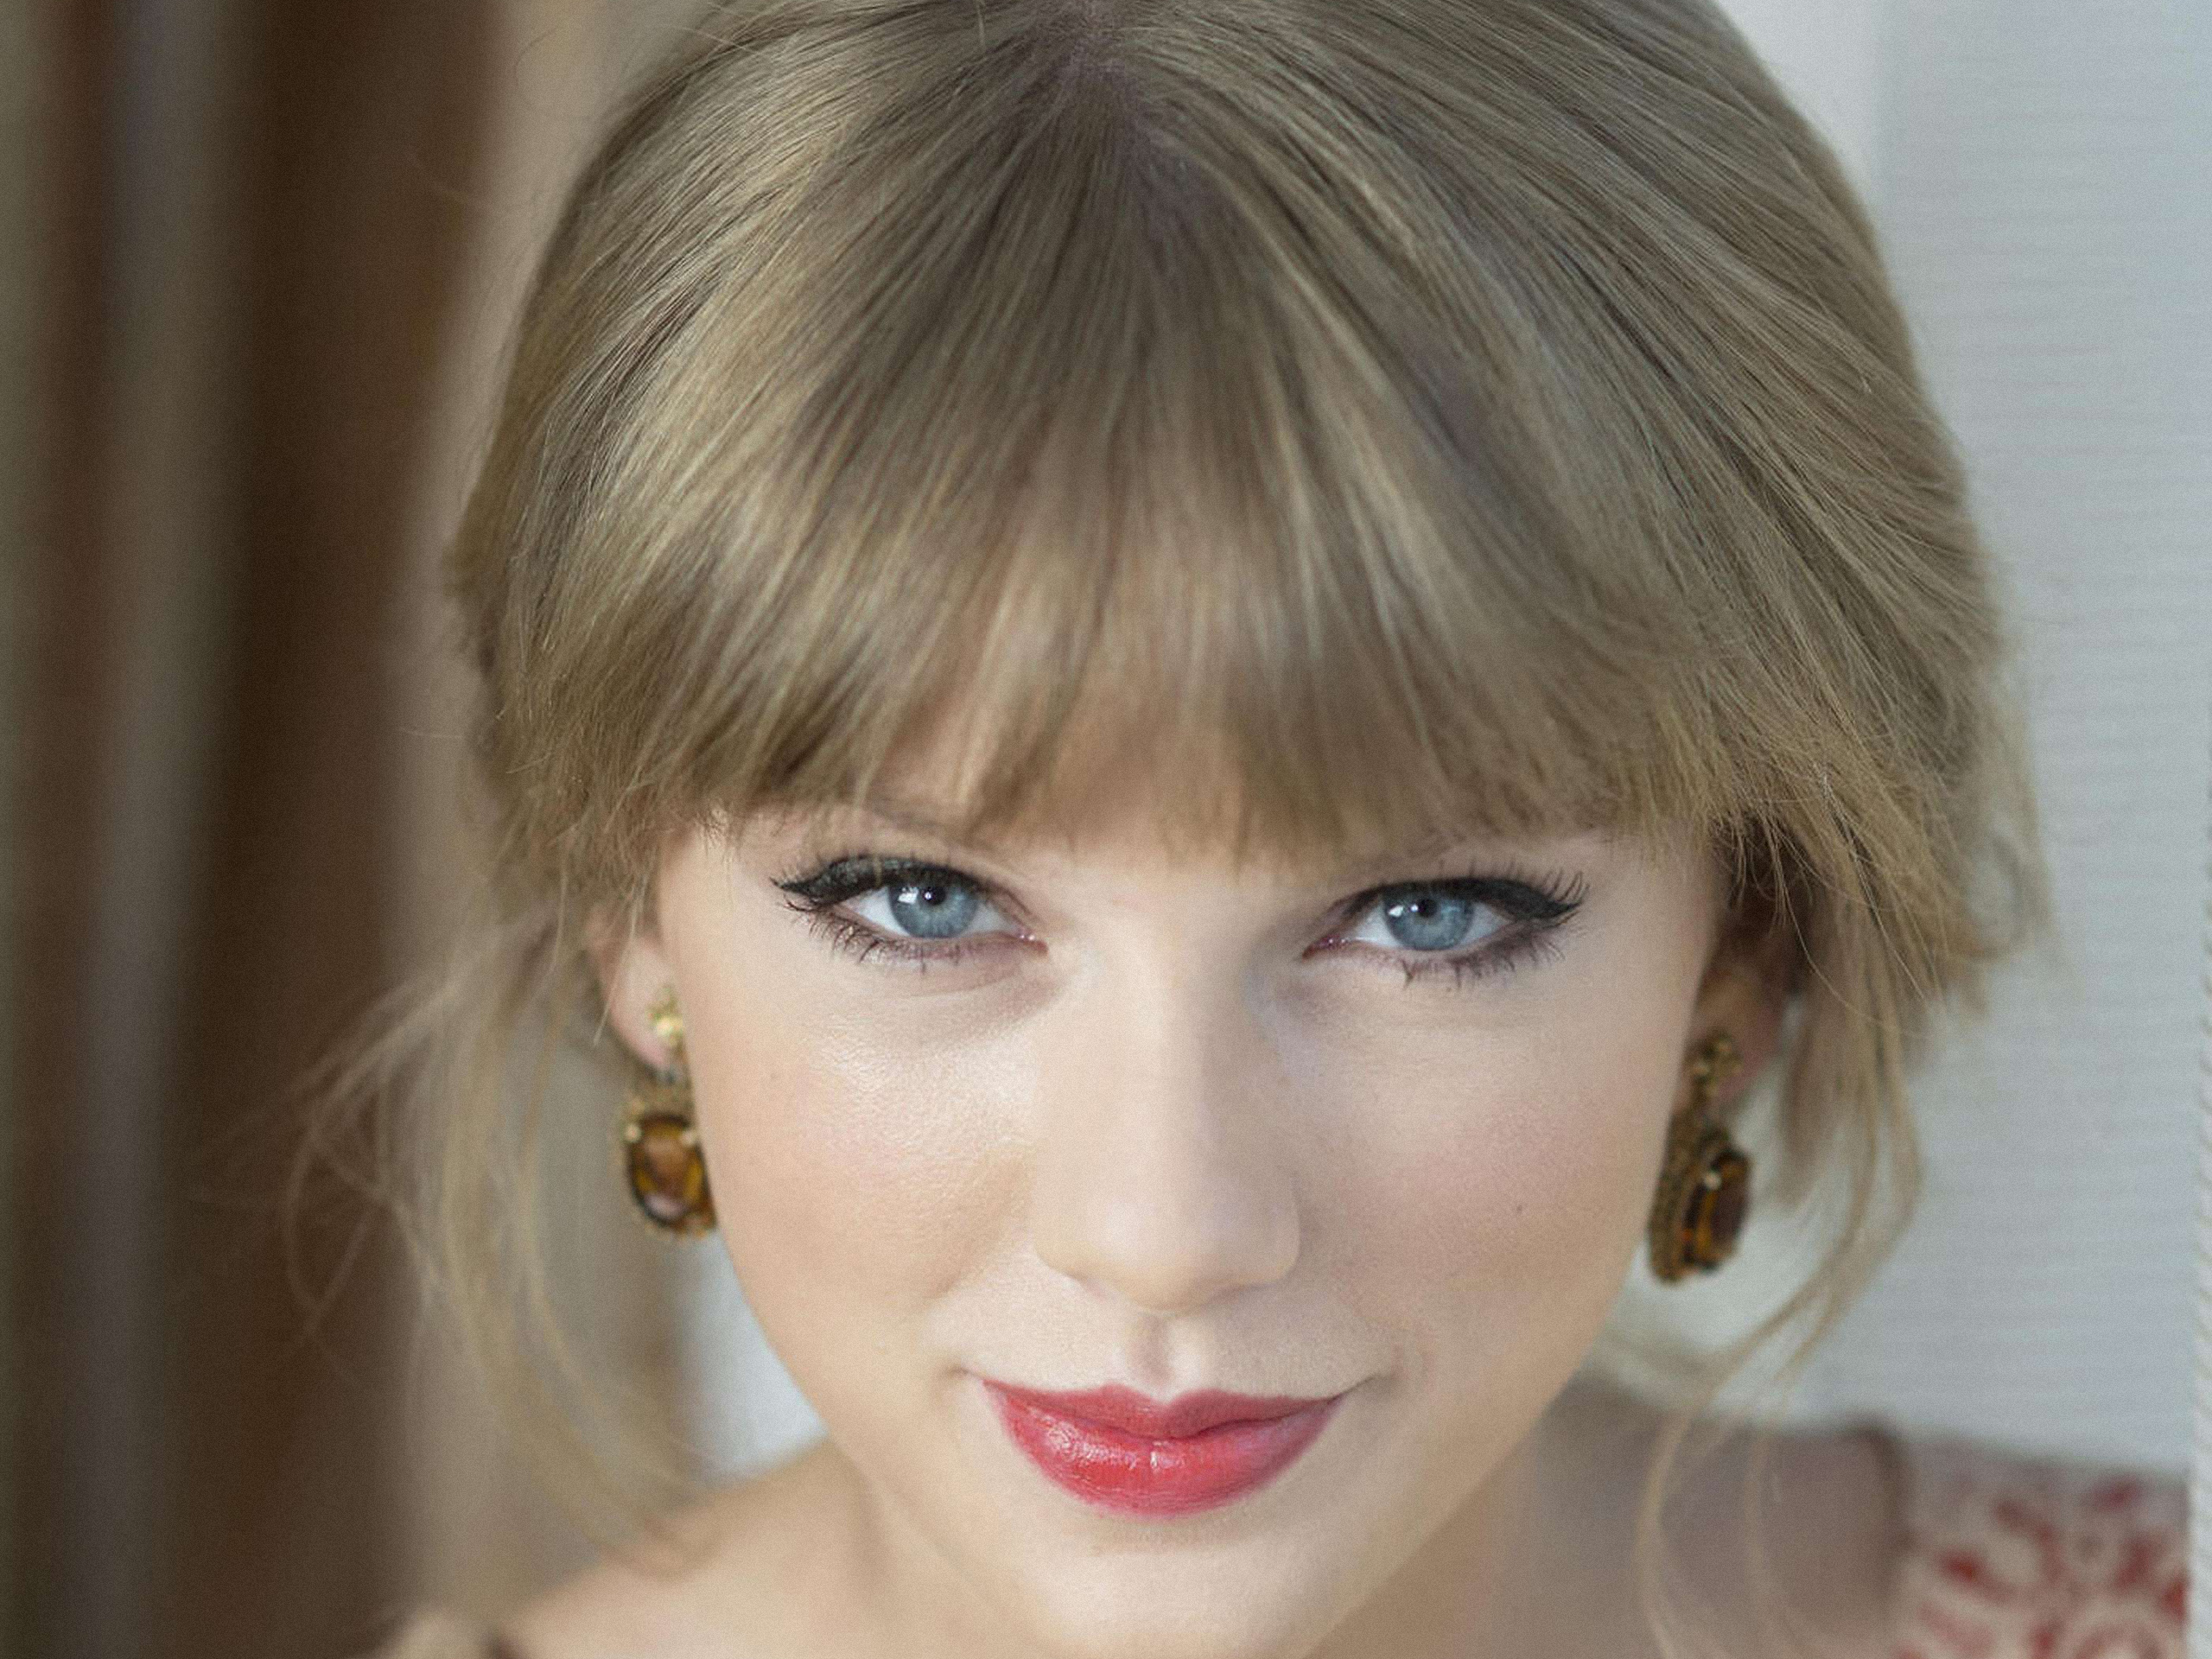 taylor swift photoshoot | free desktop wallpapers for widescreen, hd